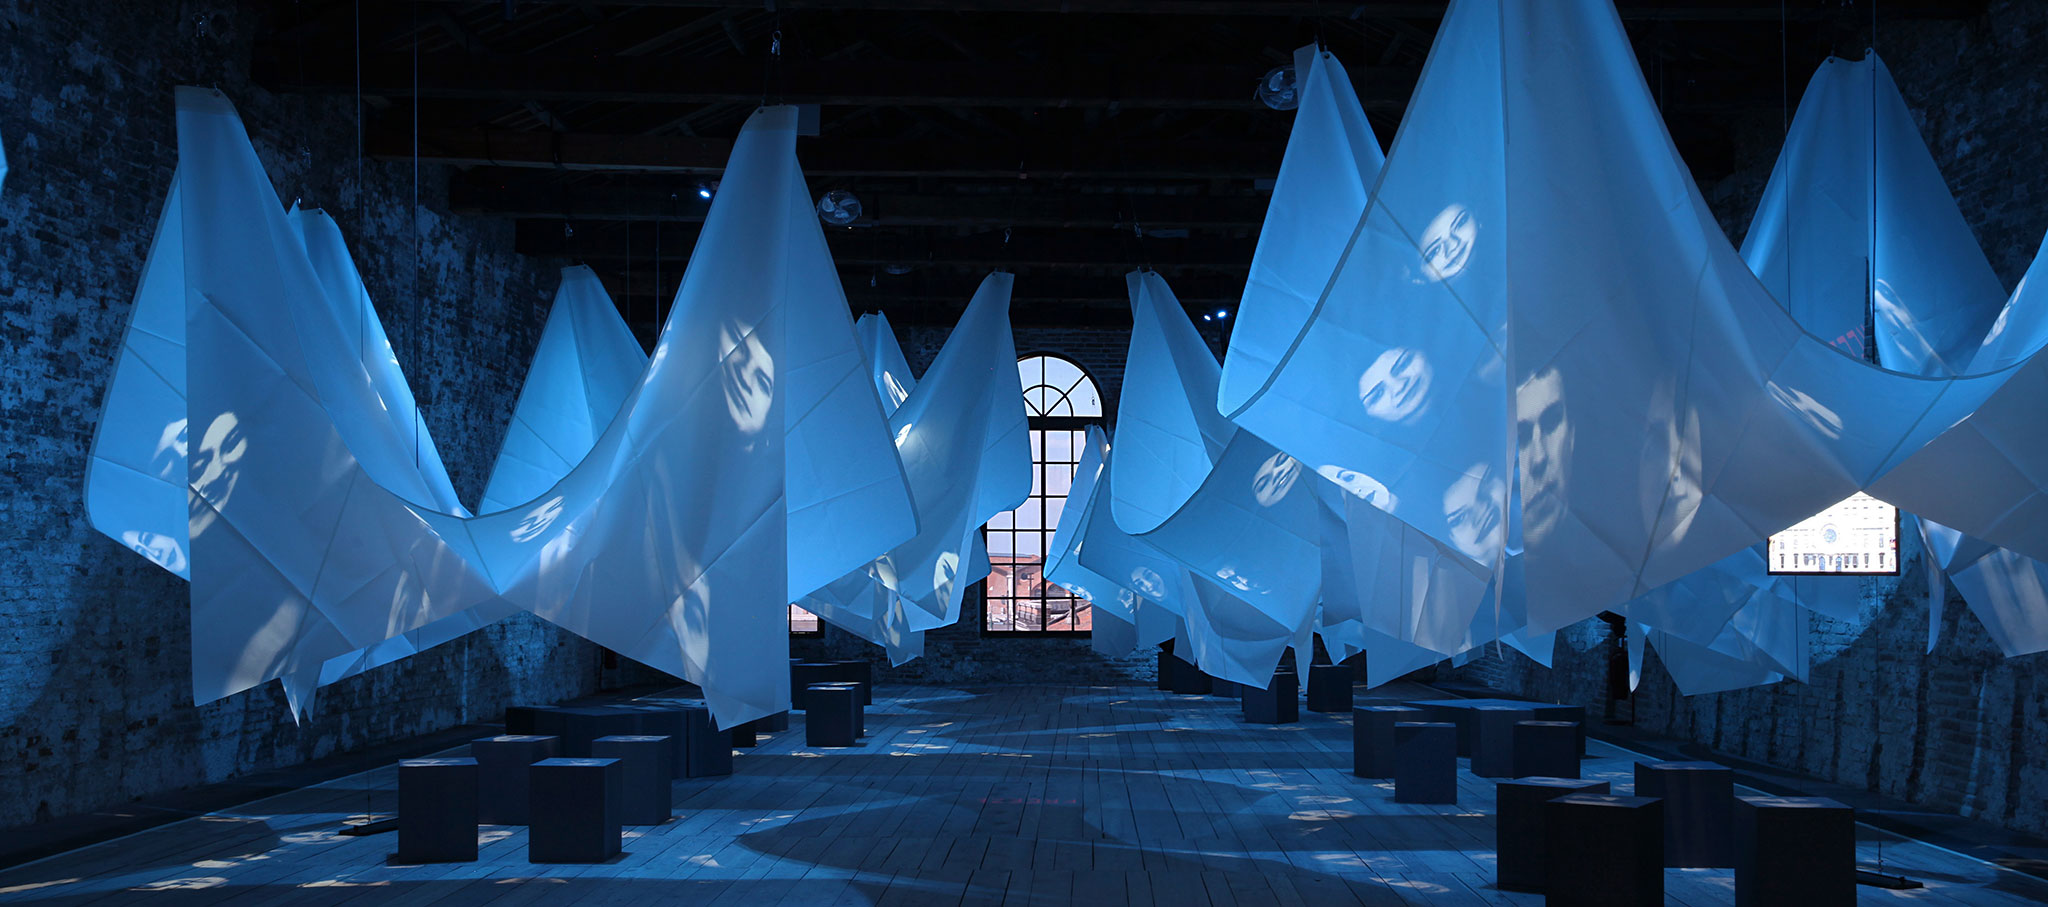 Vardiya / the Shift. Pavilion of Turkey at the Biennale Architettura di Venezia 2018. Image courtesy of İKSV